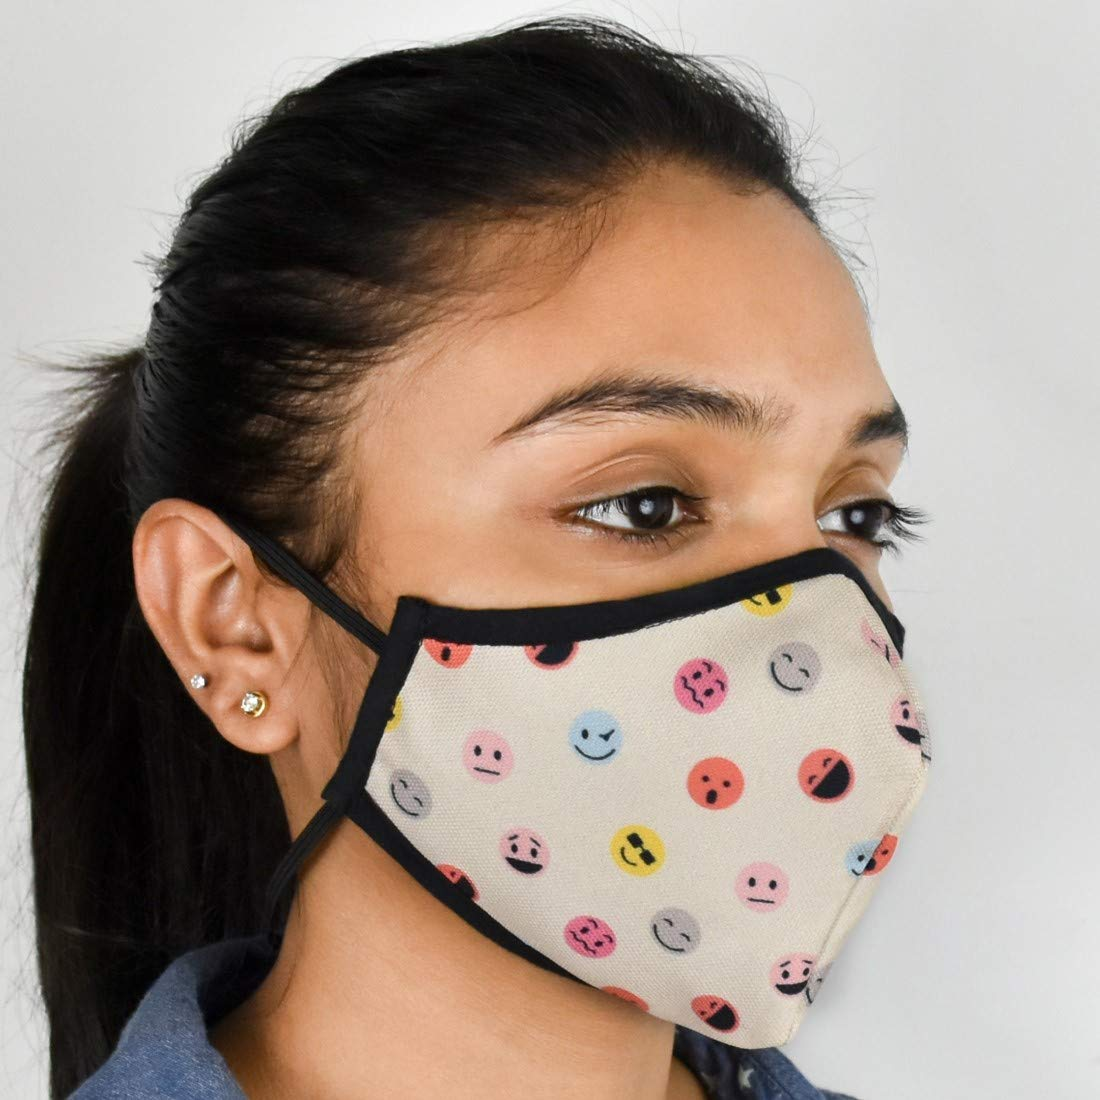 "Indigifts Pollution Mask For Adults Face Mask For Men/Women Designer Printed Anti Pollution Nose Mask for Dust Protection (Unisex, 4.5""x5"", 1 Piece) - Half Mouth Protection Washable Face Mask"